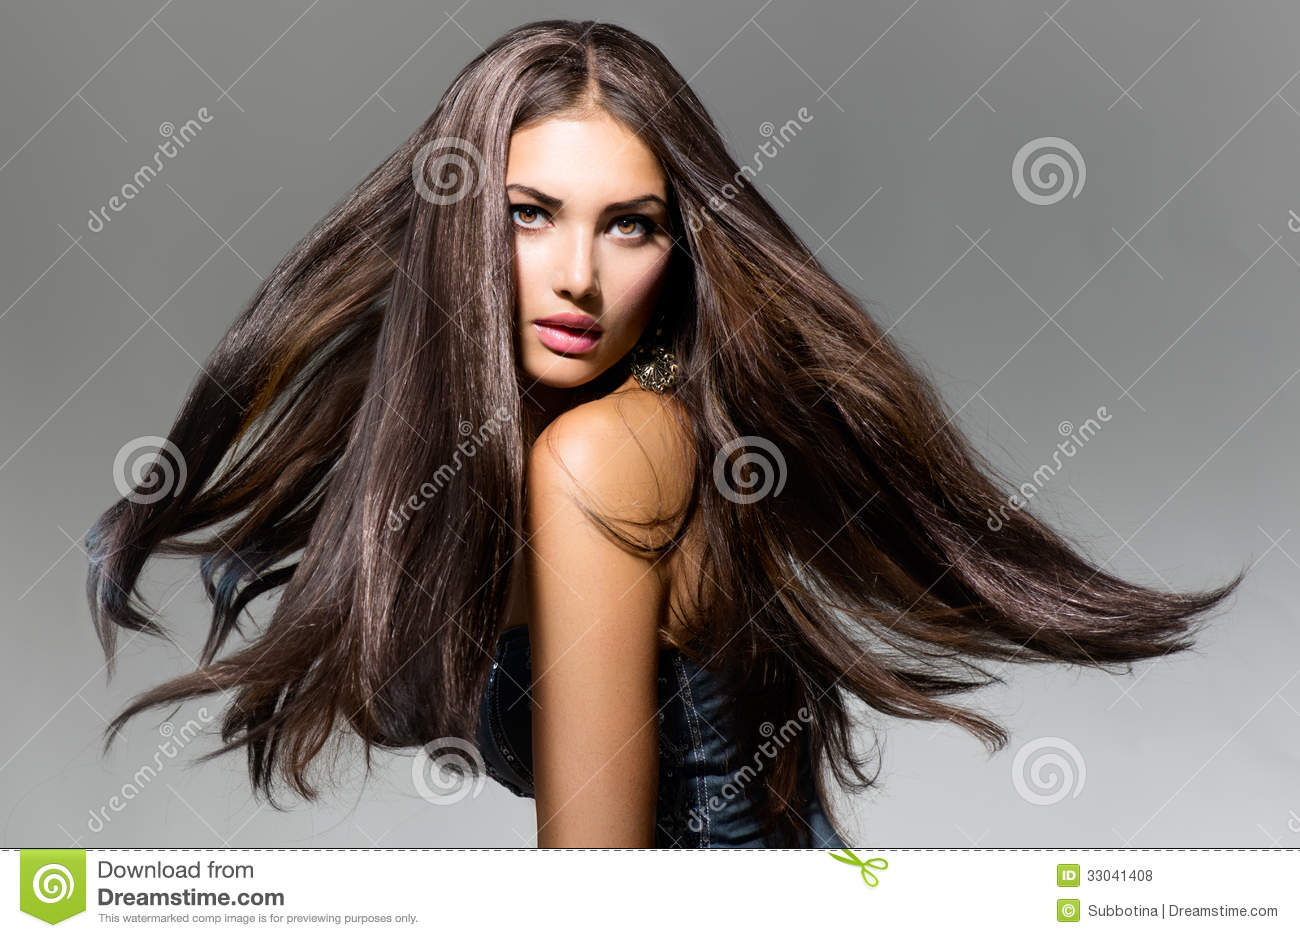 model girl with blowing hair stock photo - image of makeup, brunette